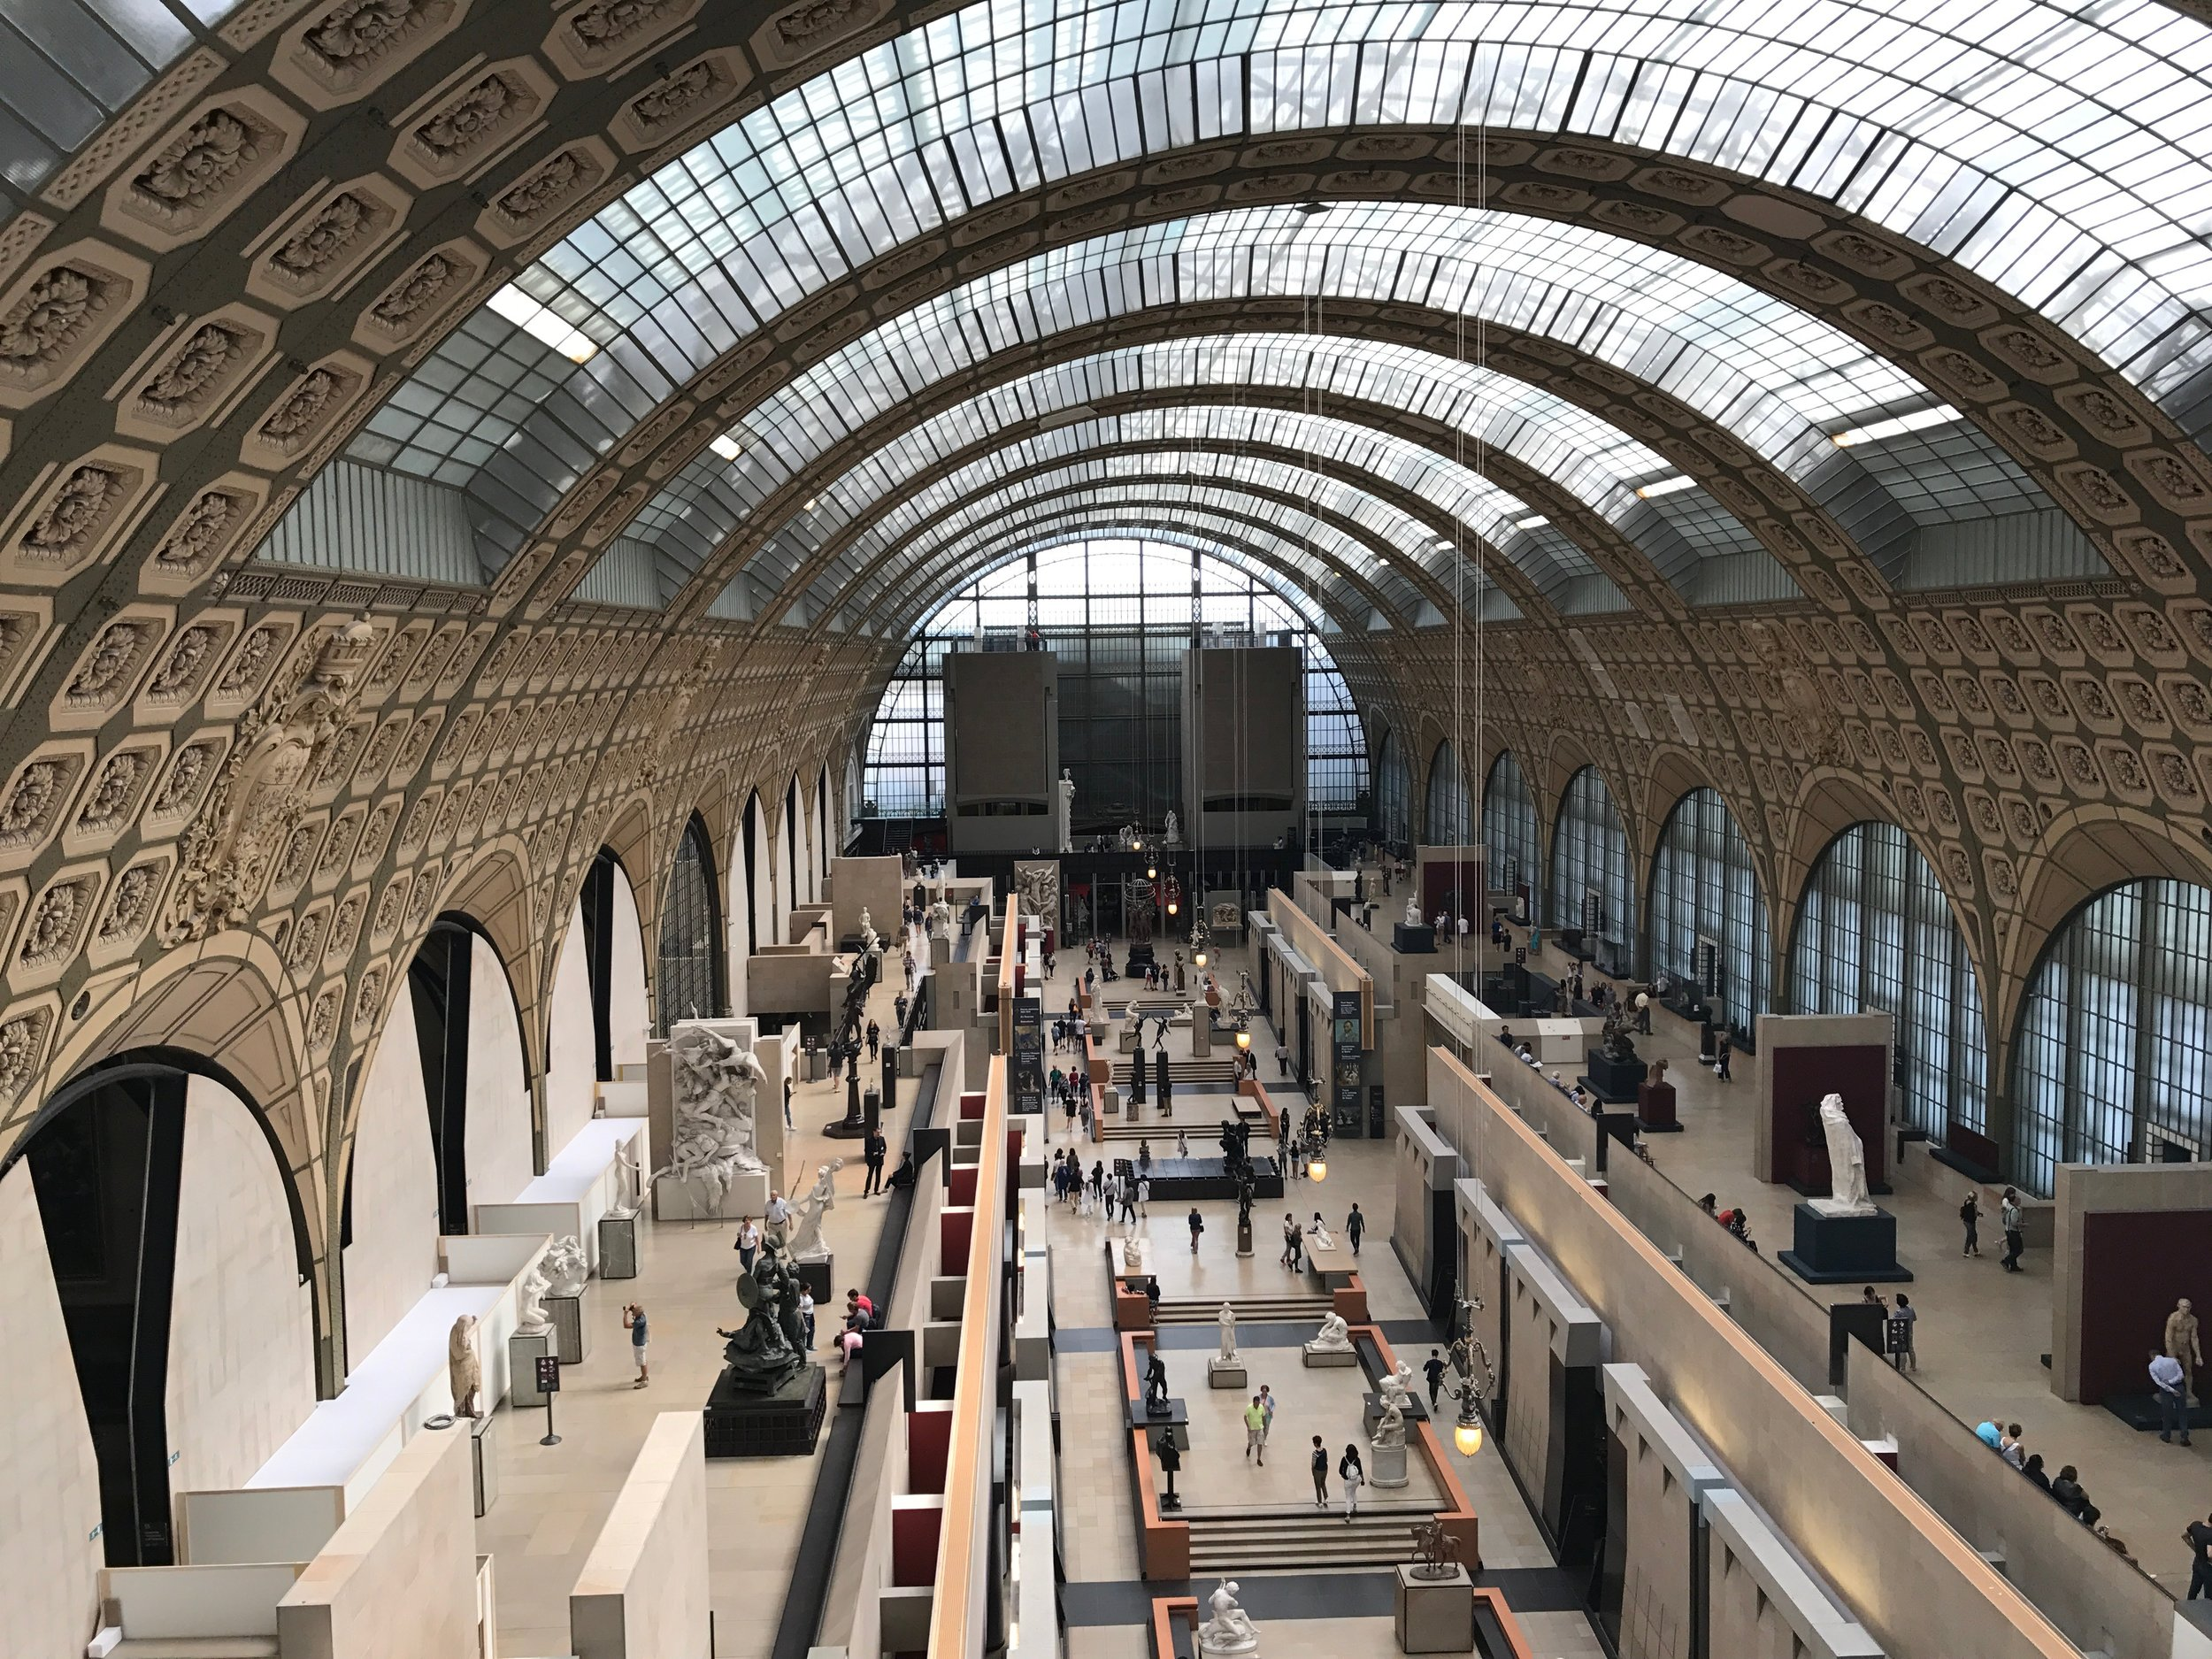 The main hall of Musée d'Orsay